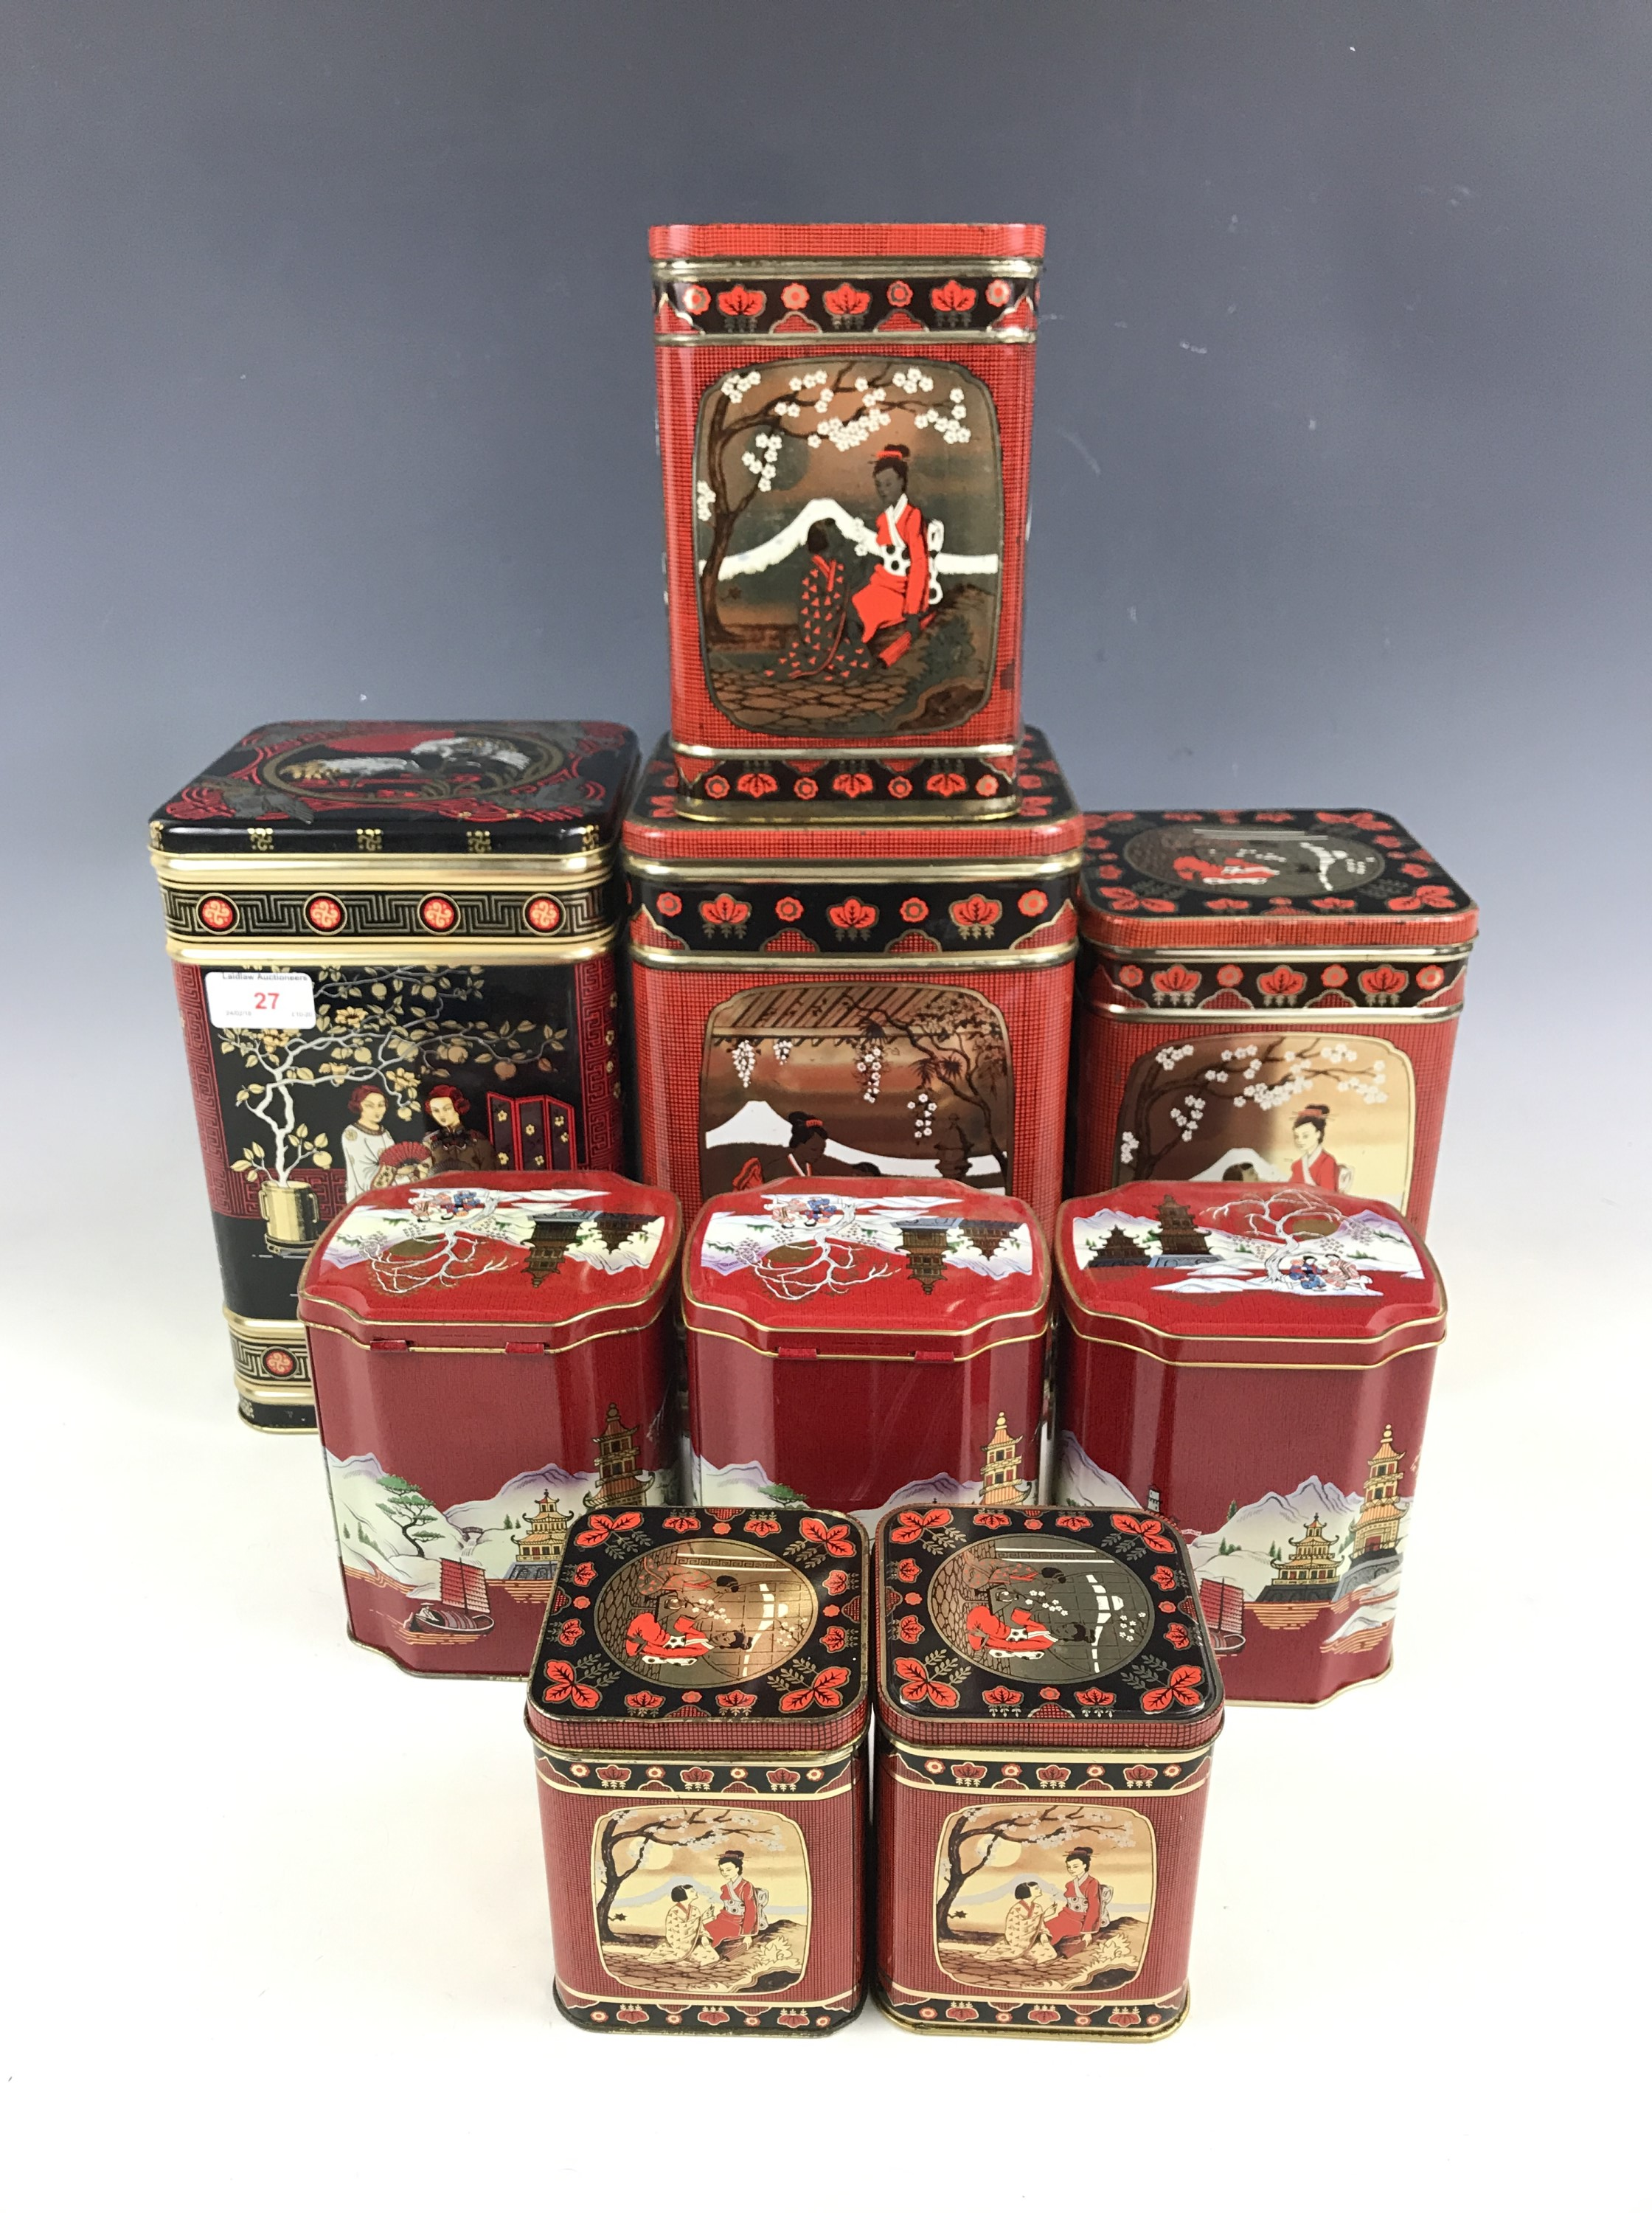 Lot 27 - A quantity of chinoiserie pattern tins manufactured by Metal Box of Carlisle